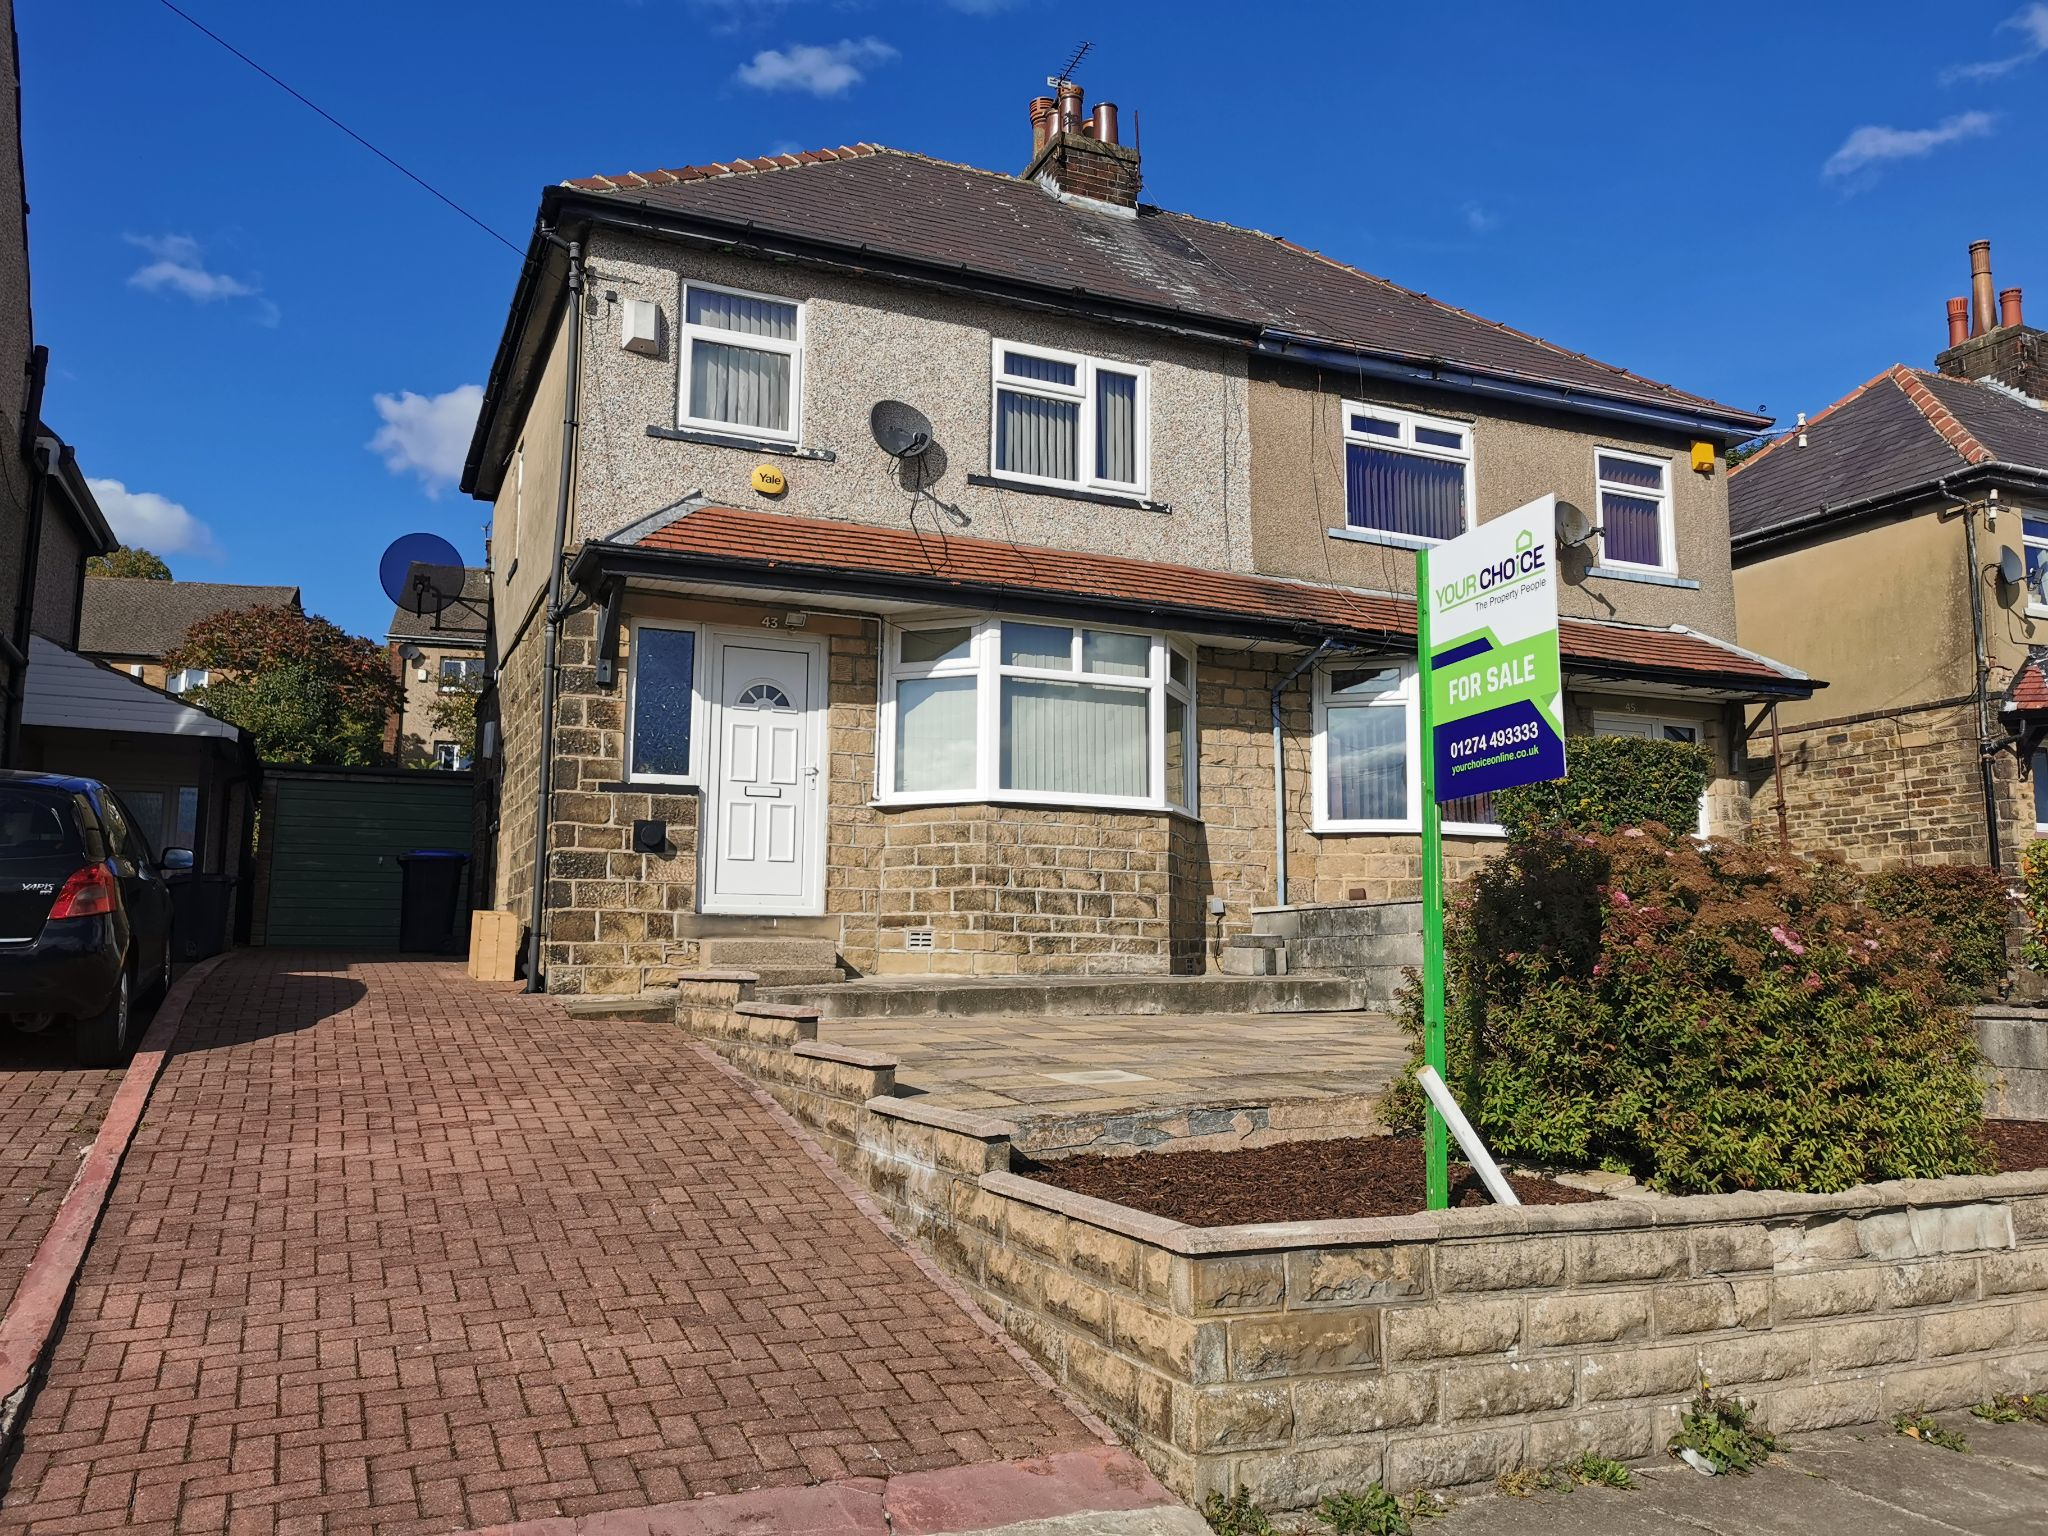 3 bedroom semi-detached house in Bradford - Photograph 1.